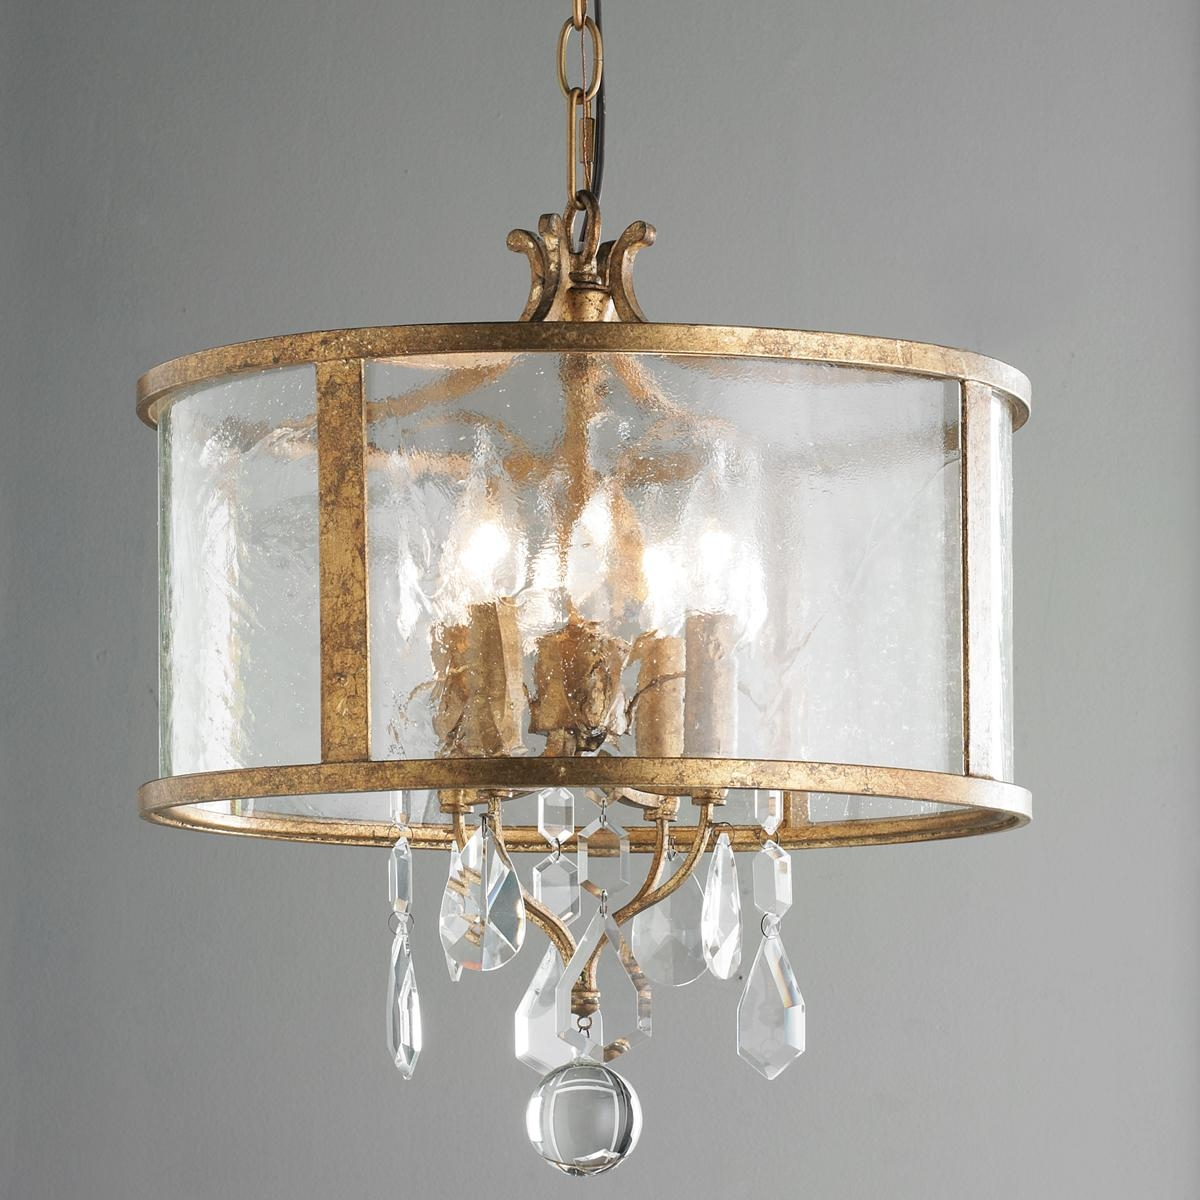 17 Best Ideas About Drum Shade Chandelier On Pinterest: 25 Best Clip On Drum Chandelier Shades